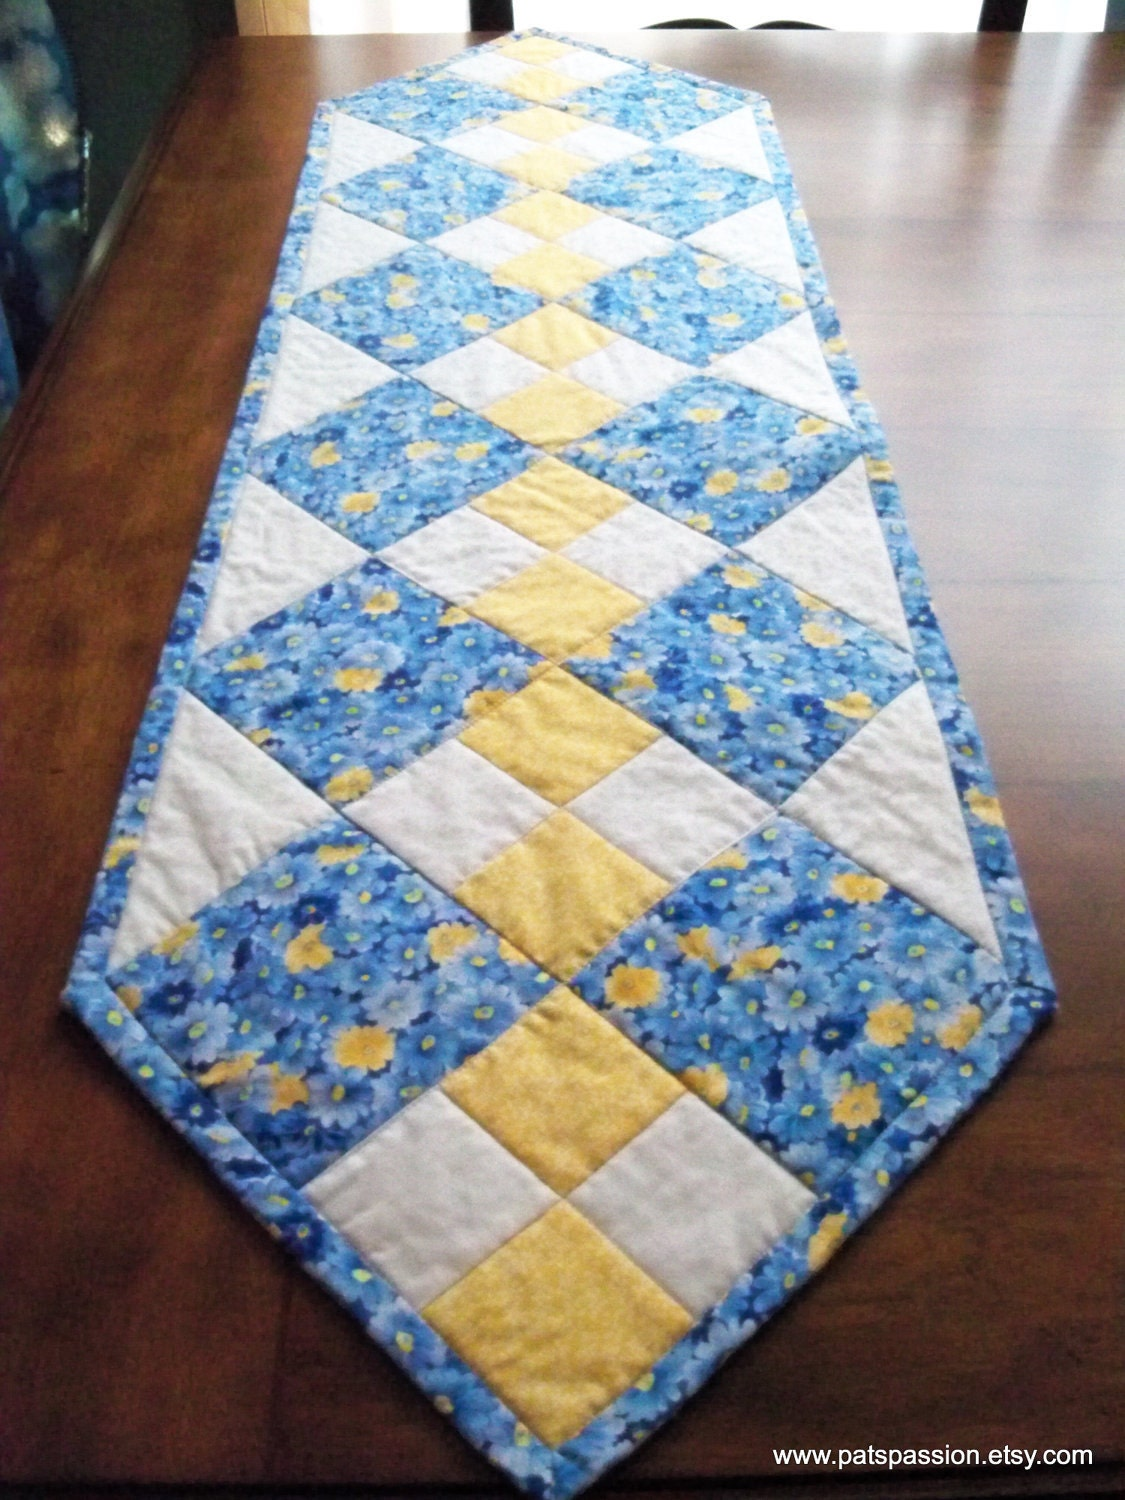 PatsPassionQuilteds runner Runner yellow Table table Blue Quilted  by Yellow Patchwork